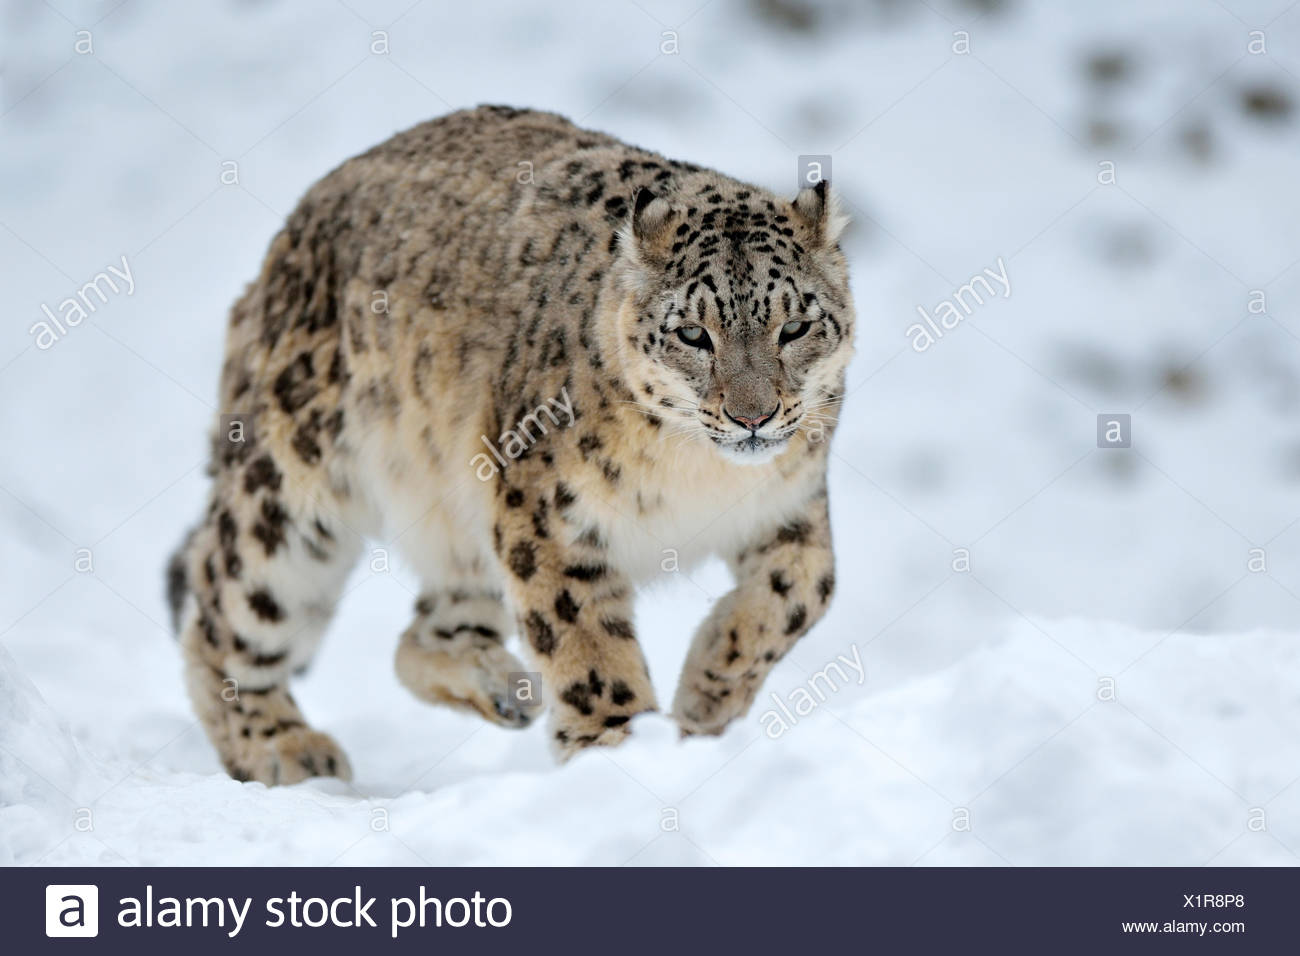 Snow Leopard (Panthera uncia), male in the snow, captive, Switzerland - Stock Image